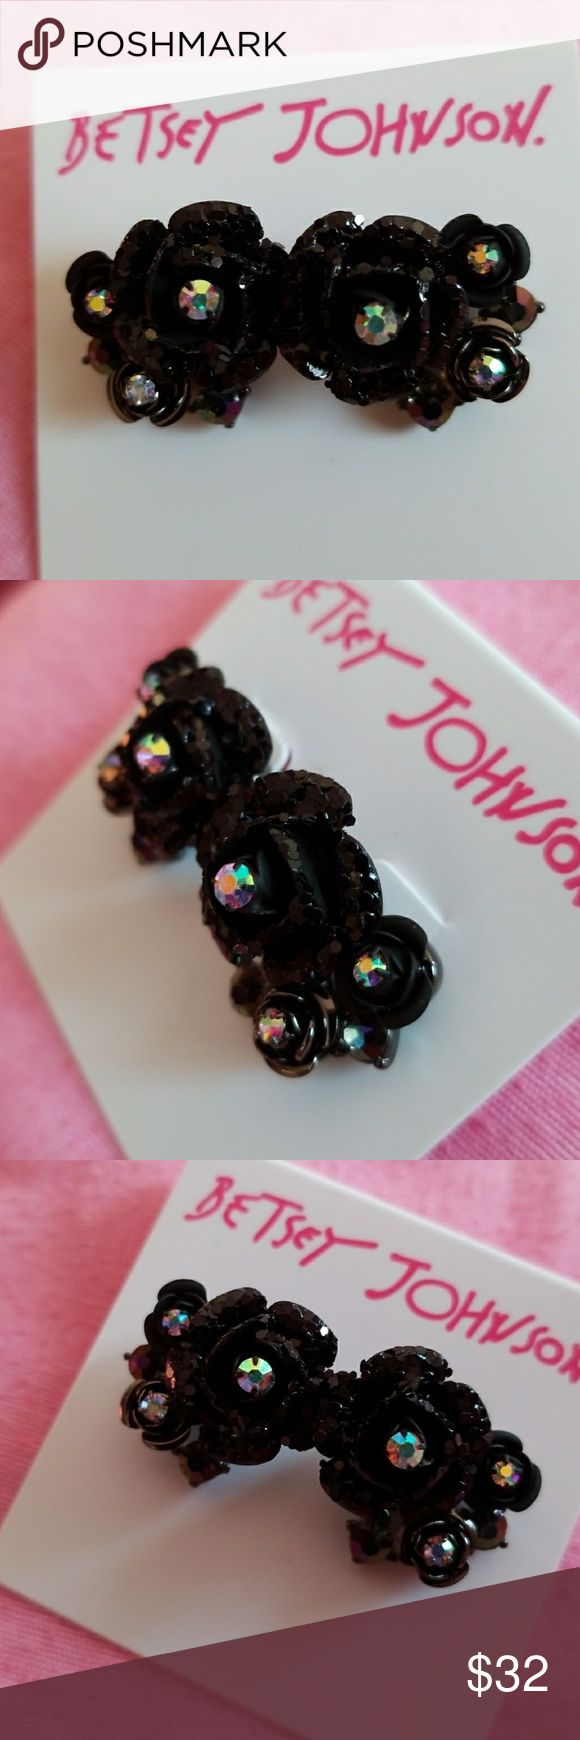 Betsey Johnson black rose earrings These are glittery black..size of a penny price firm Betsey Johnson Jewelry Earrings